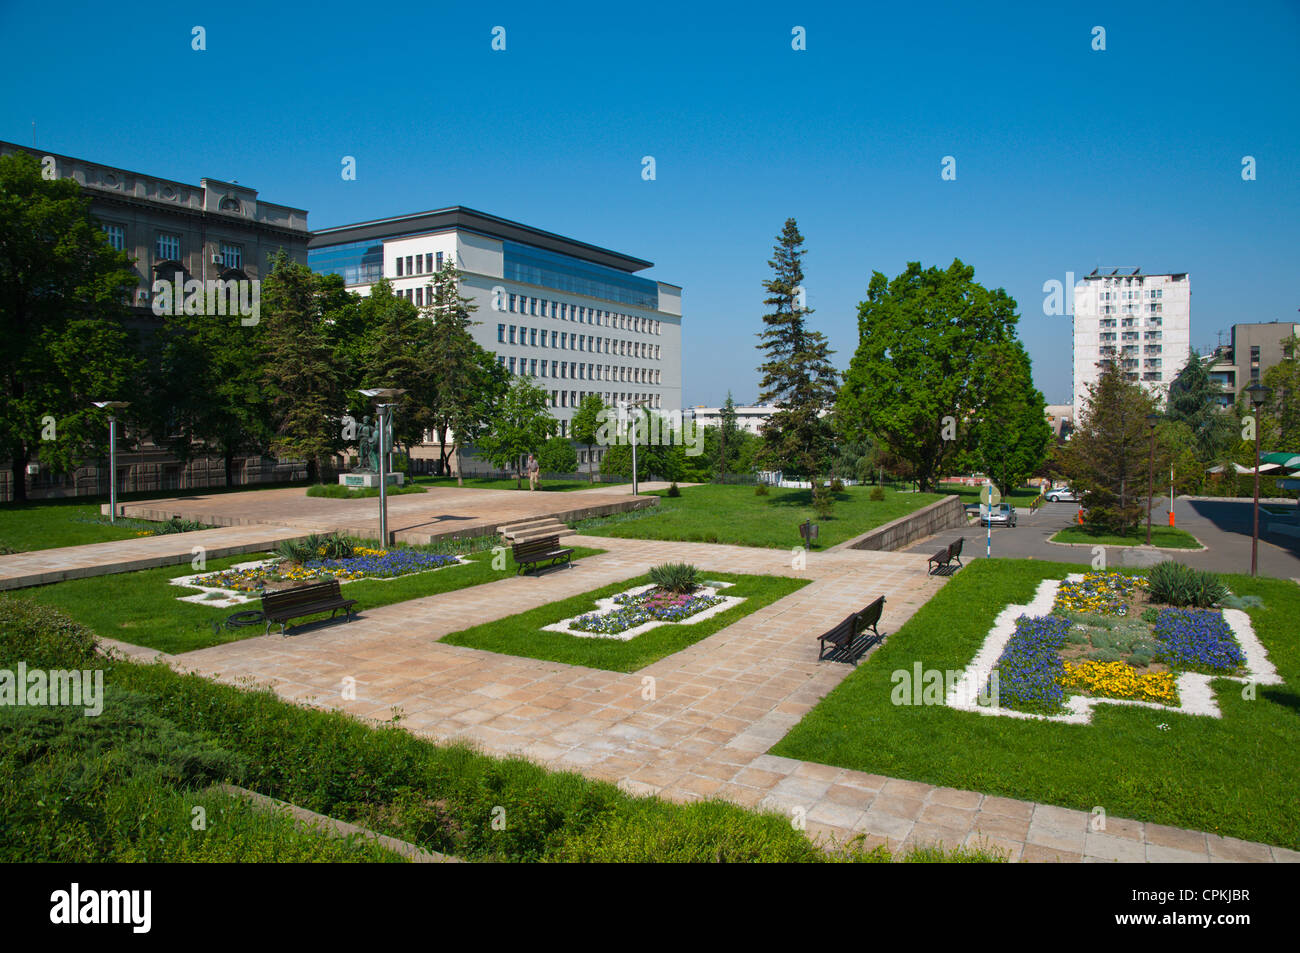 Newly refurbished Finansijski park the park next to Financial ministry buildings central Belgrade Serbia Europe - Stock Image